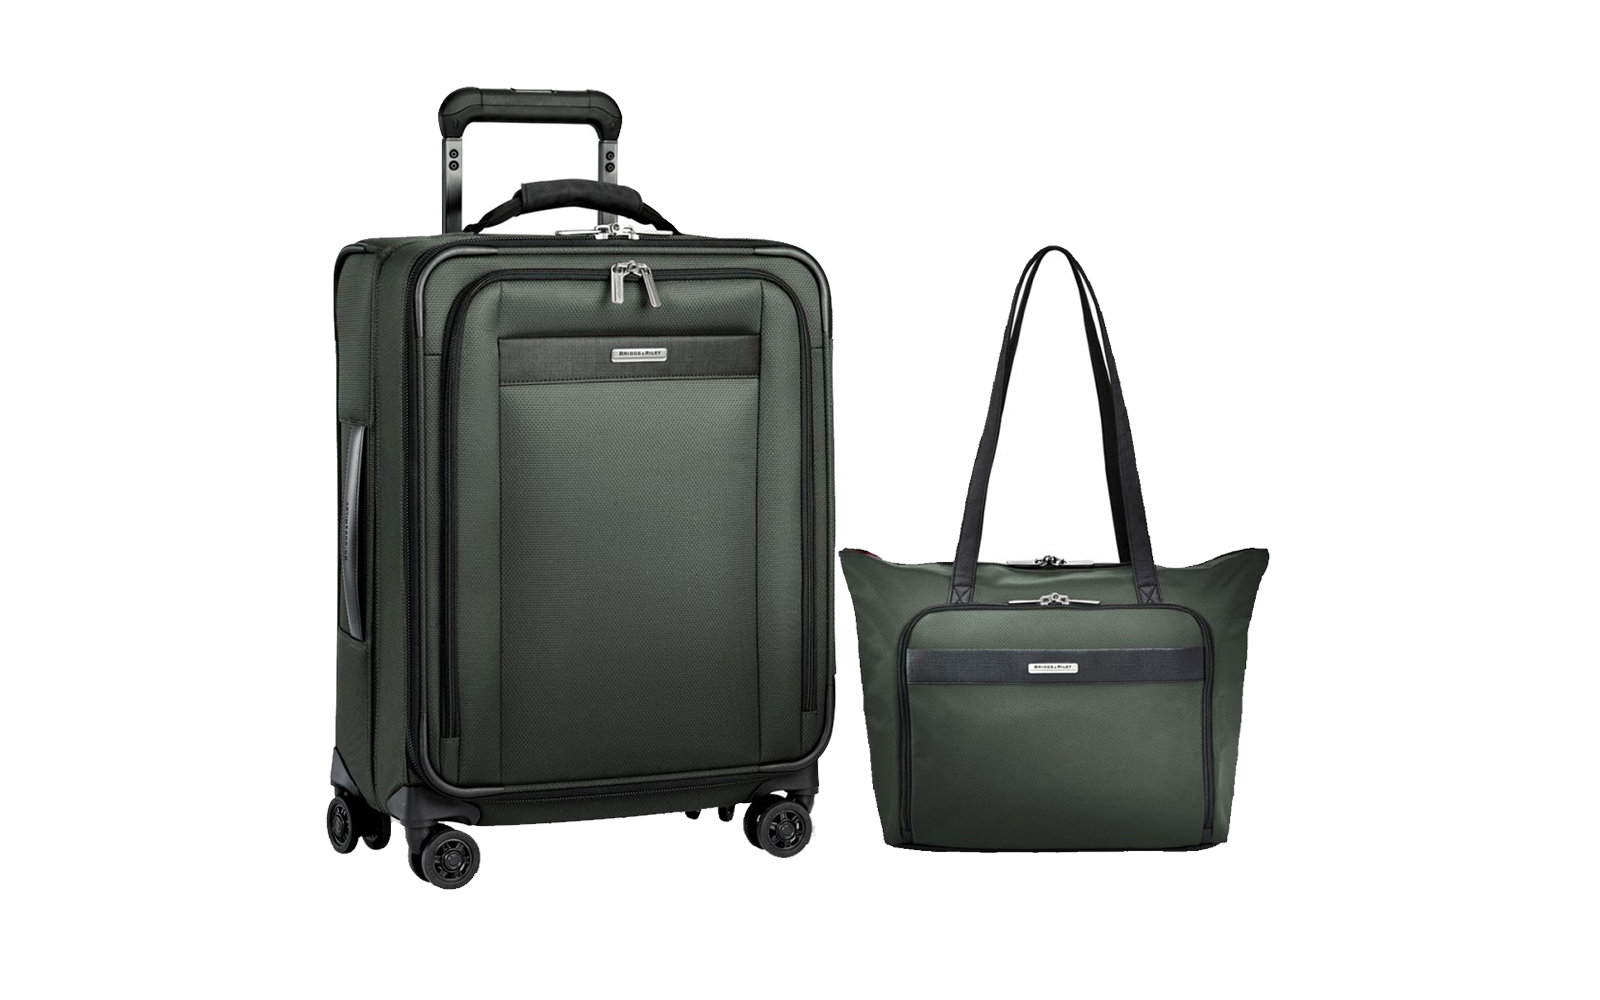 Briggs & Riley Carry-On Spinner and Tote